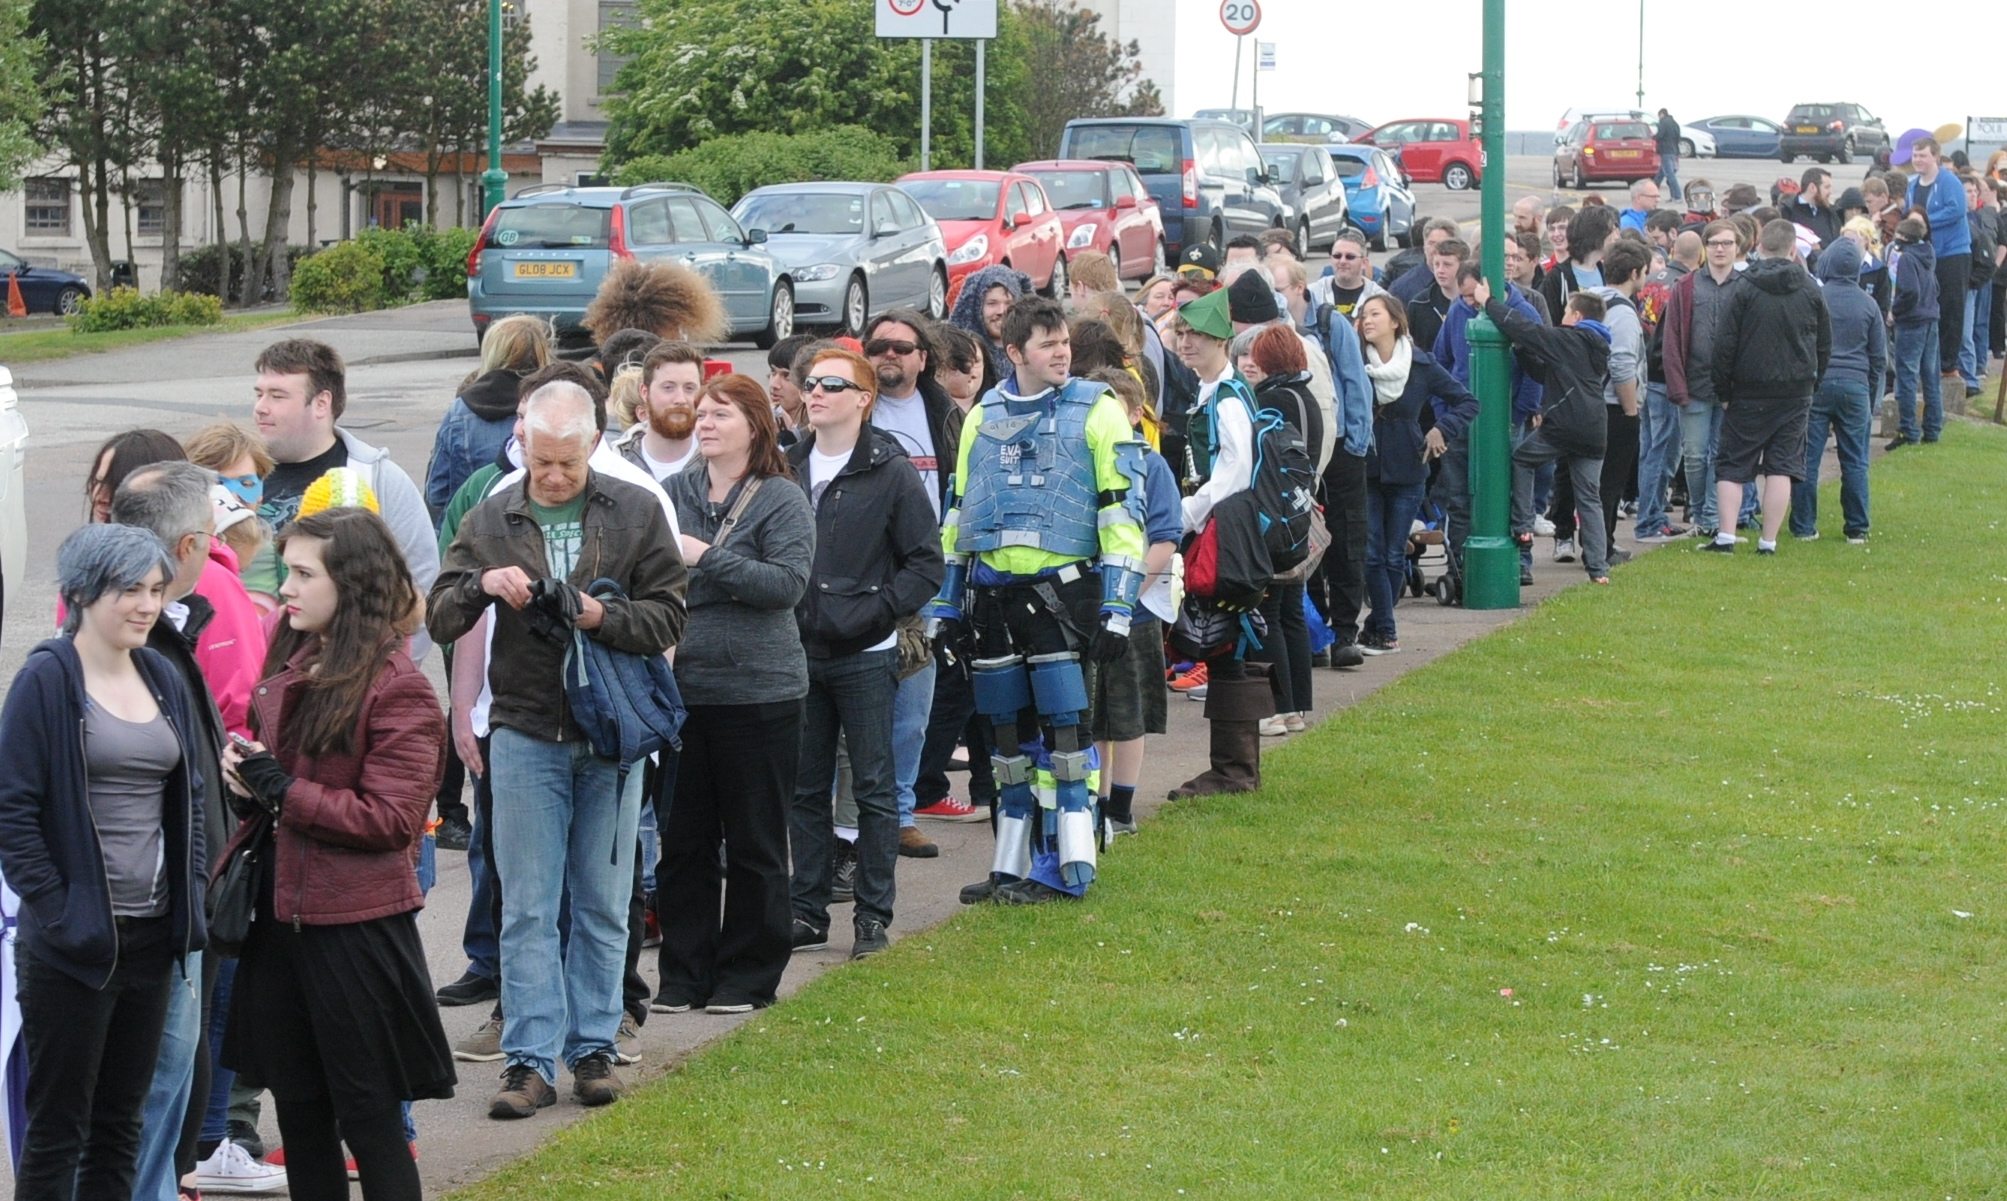 Picture from the Granite City Comic Con, held at Transition Extreme. Pictured is part of the queue to get in.